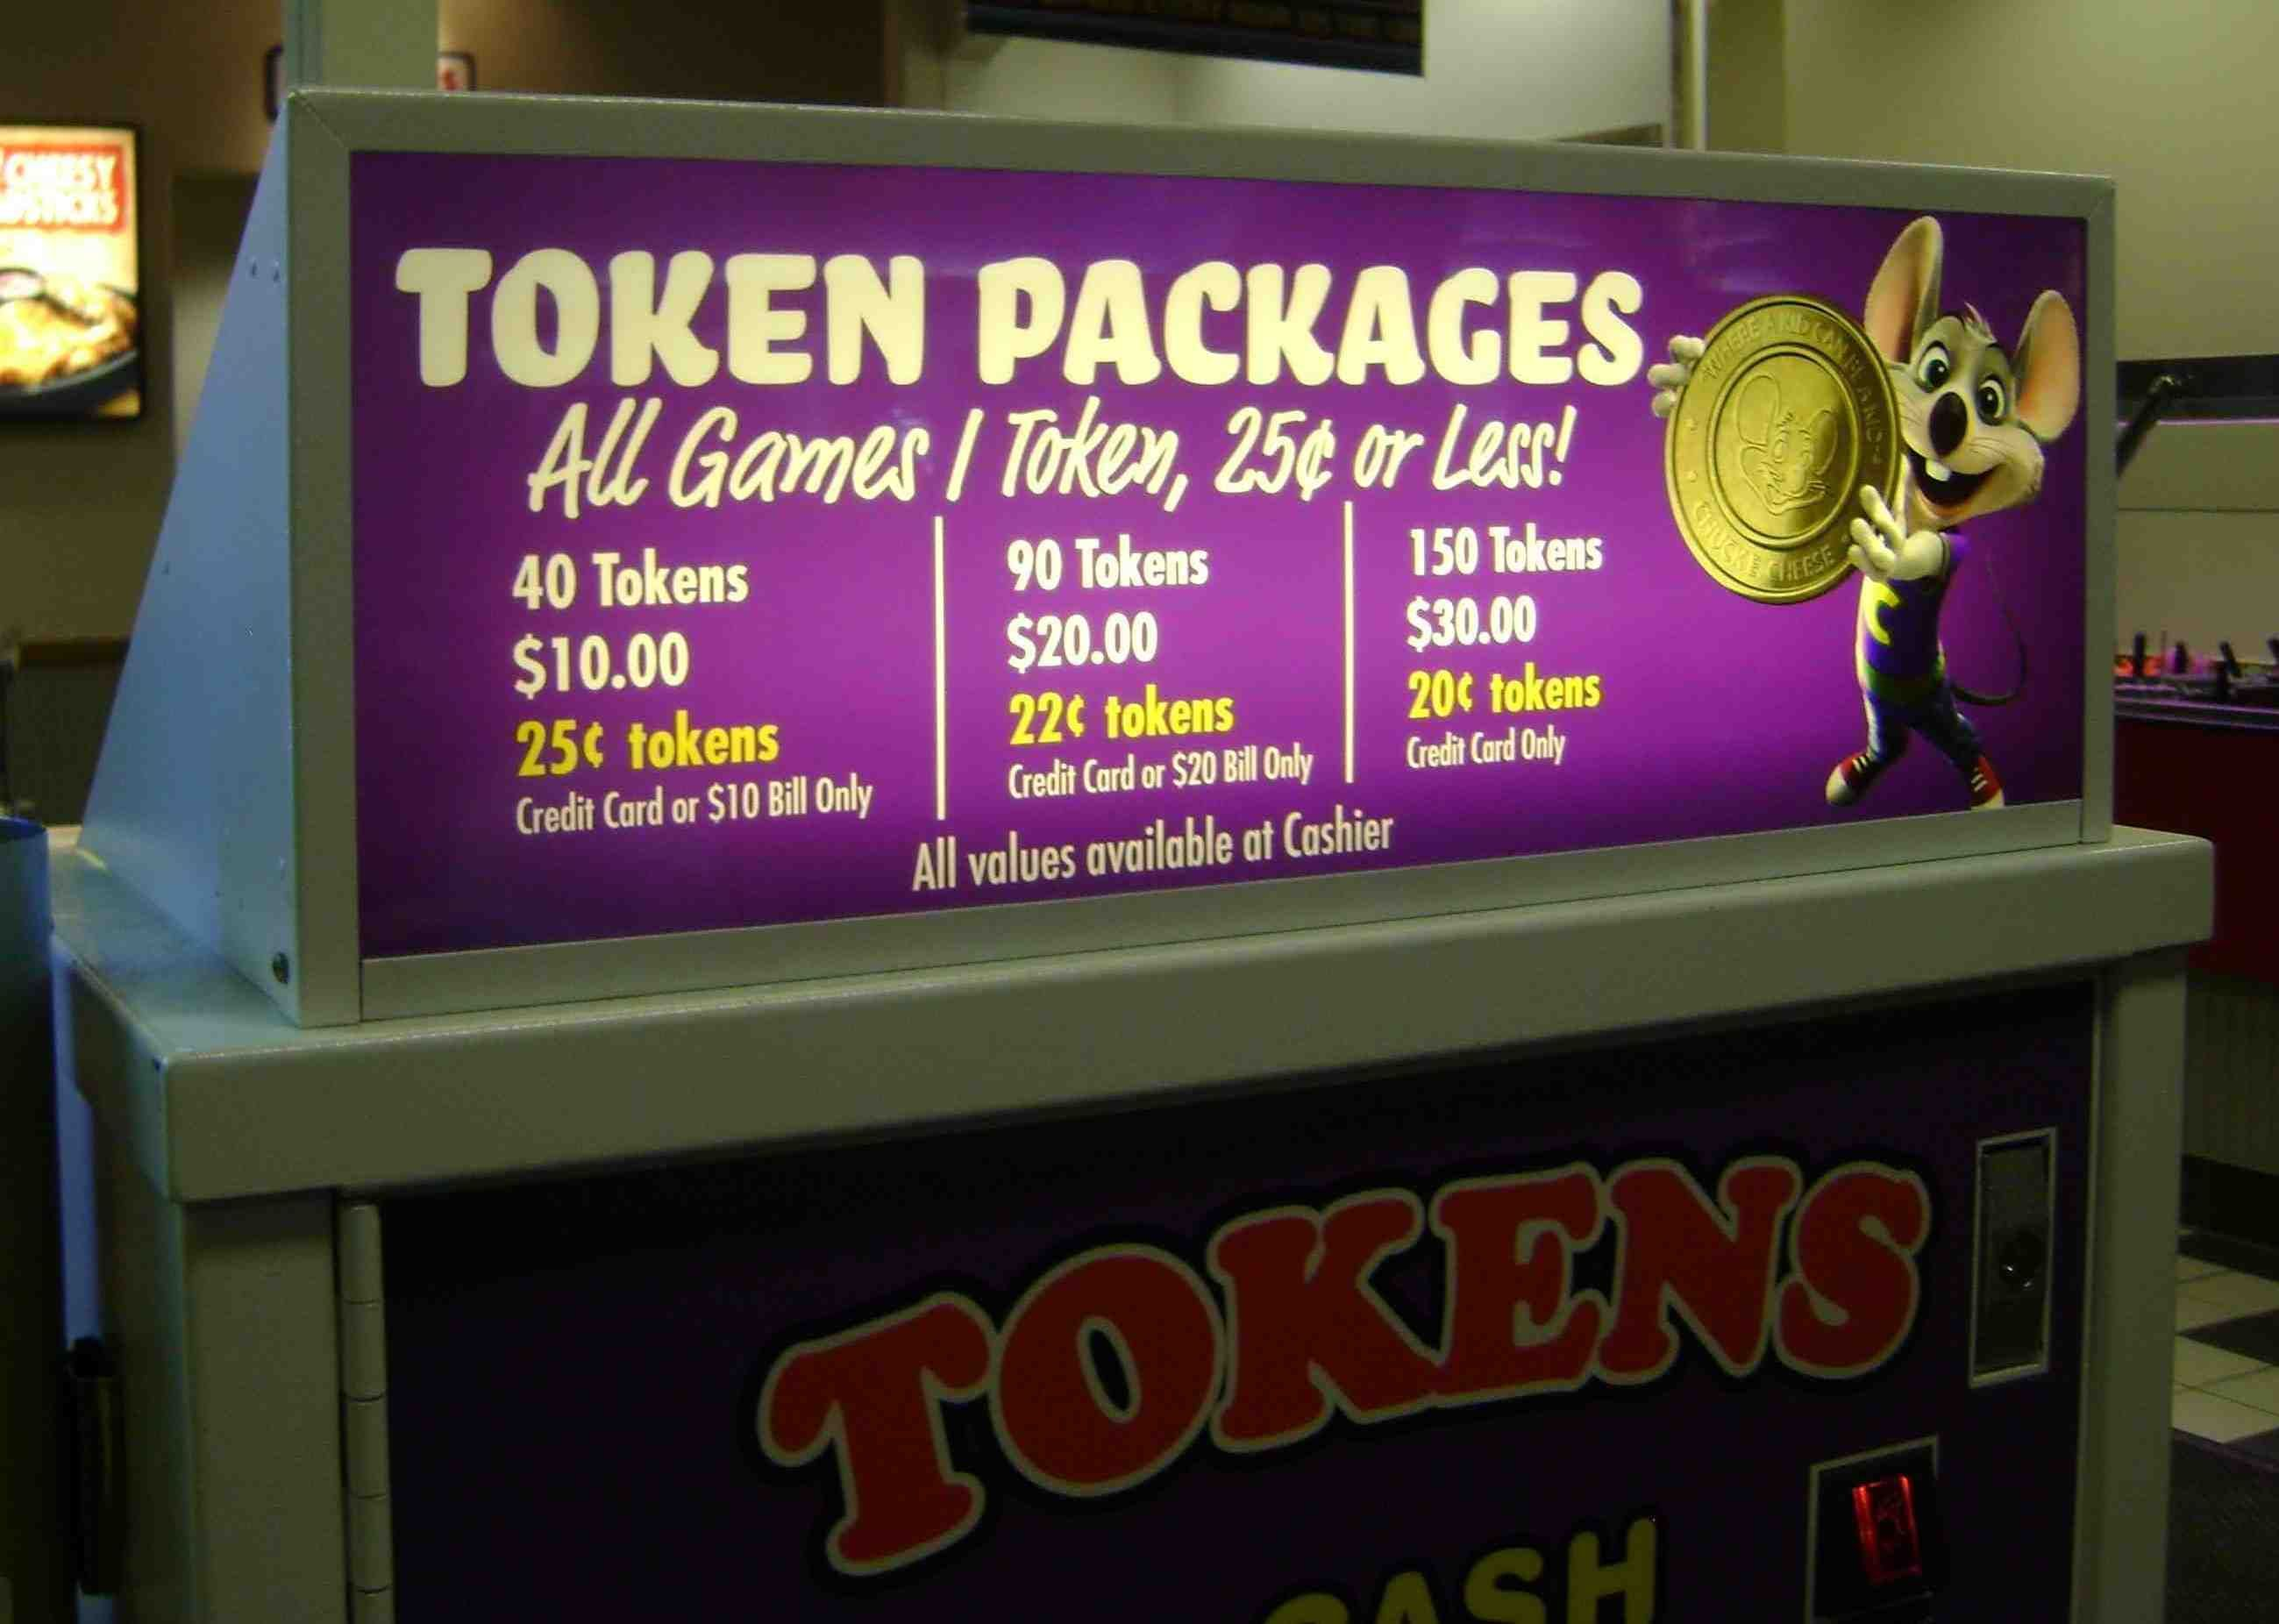 Check Out Our Token Packages